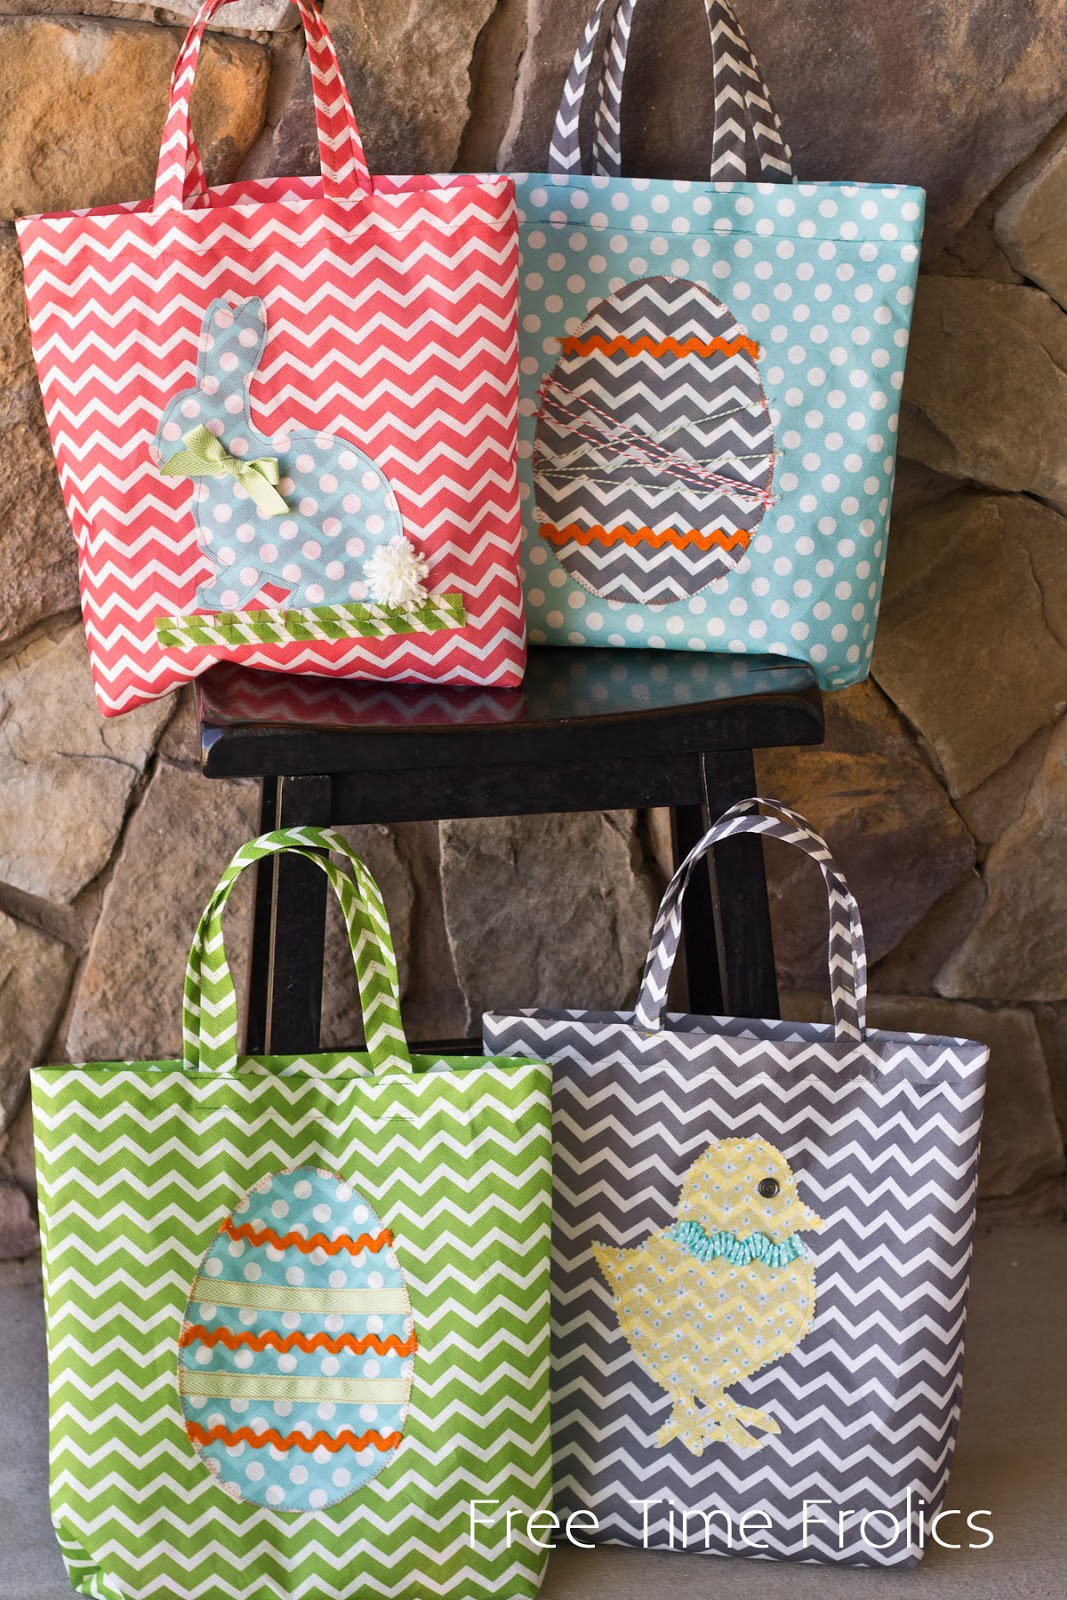 Easy Sew Easter Tote DIY - Free Time Frolics